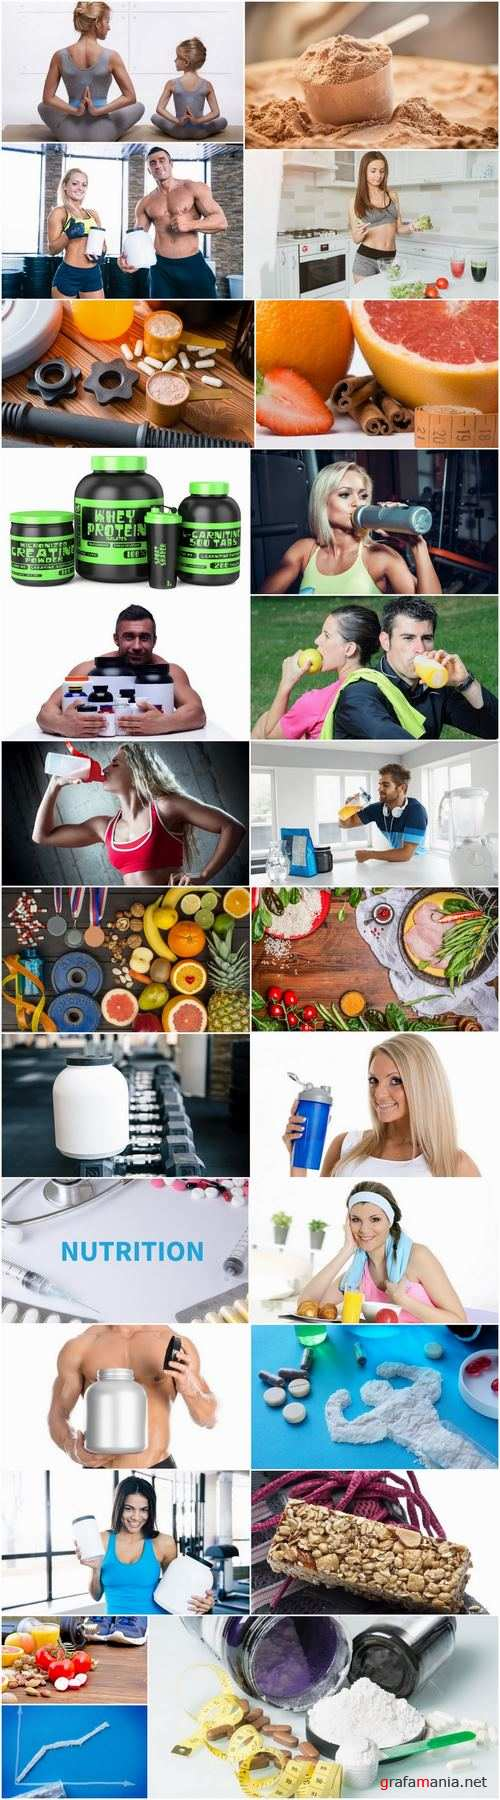 Sports nutrition fitness training gym muscle dietary supplement 25 HQ Jpeg